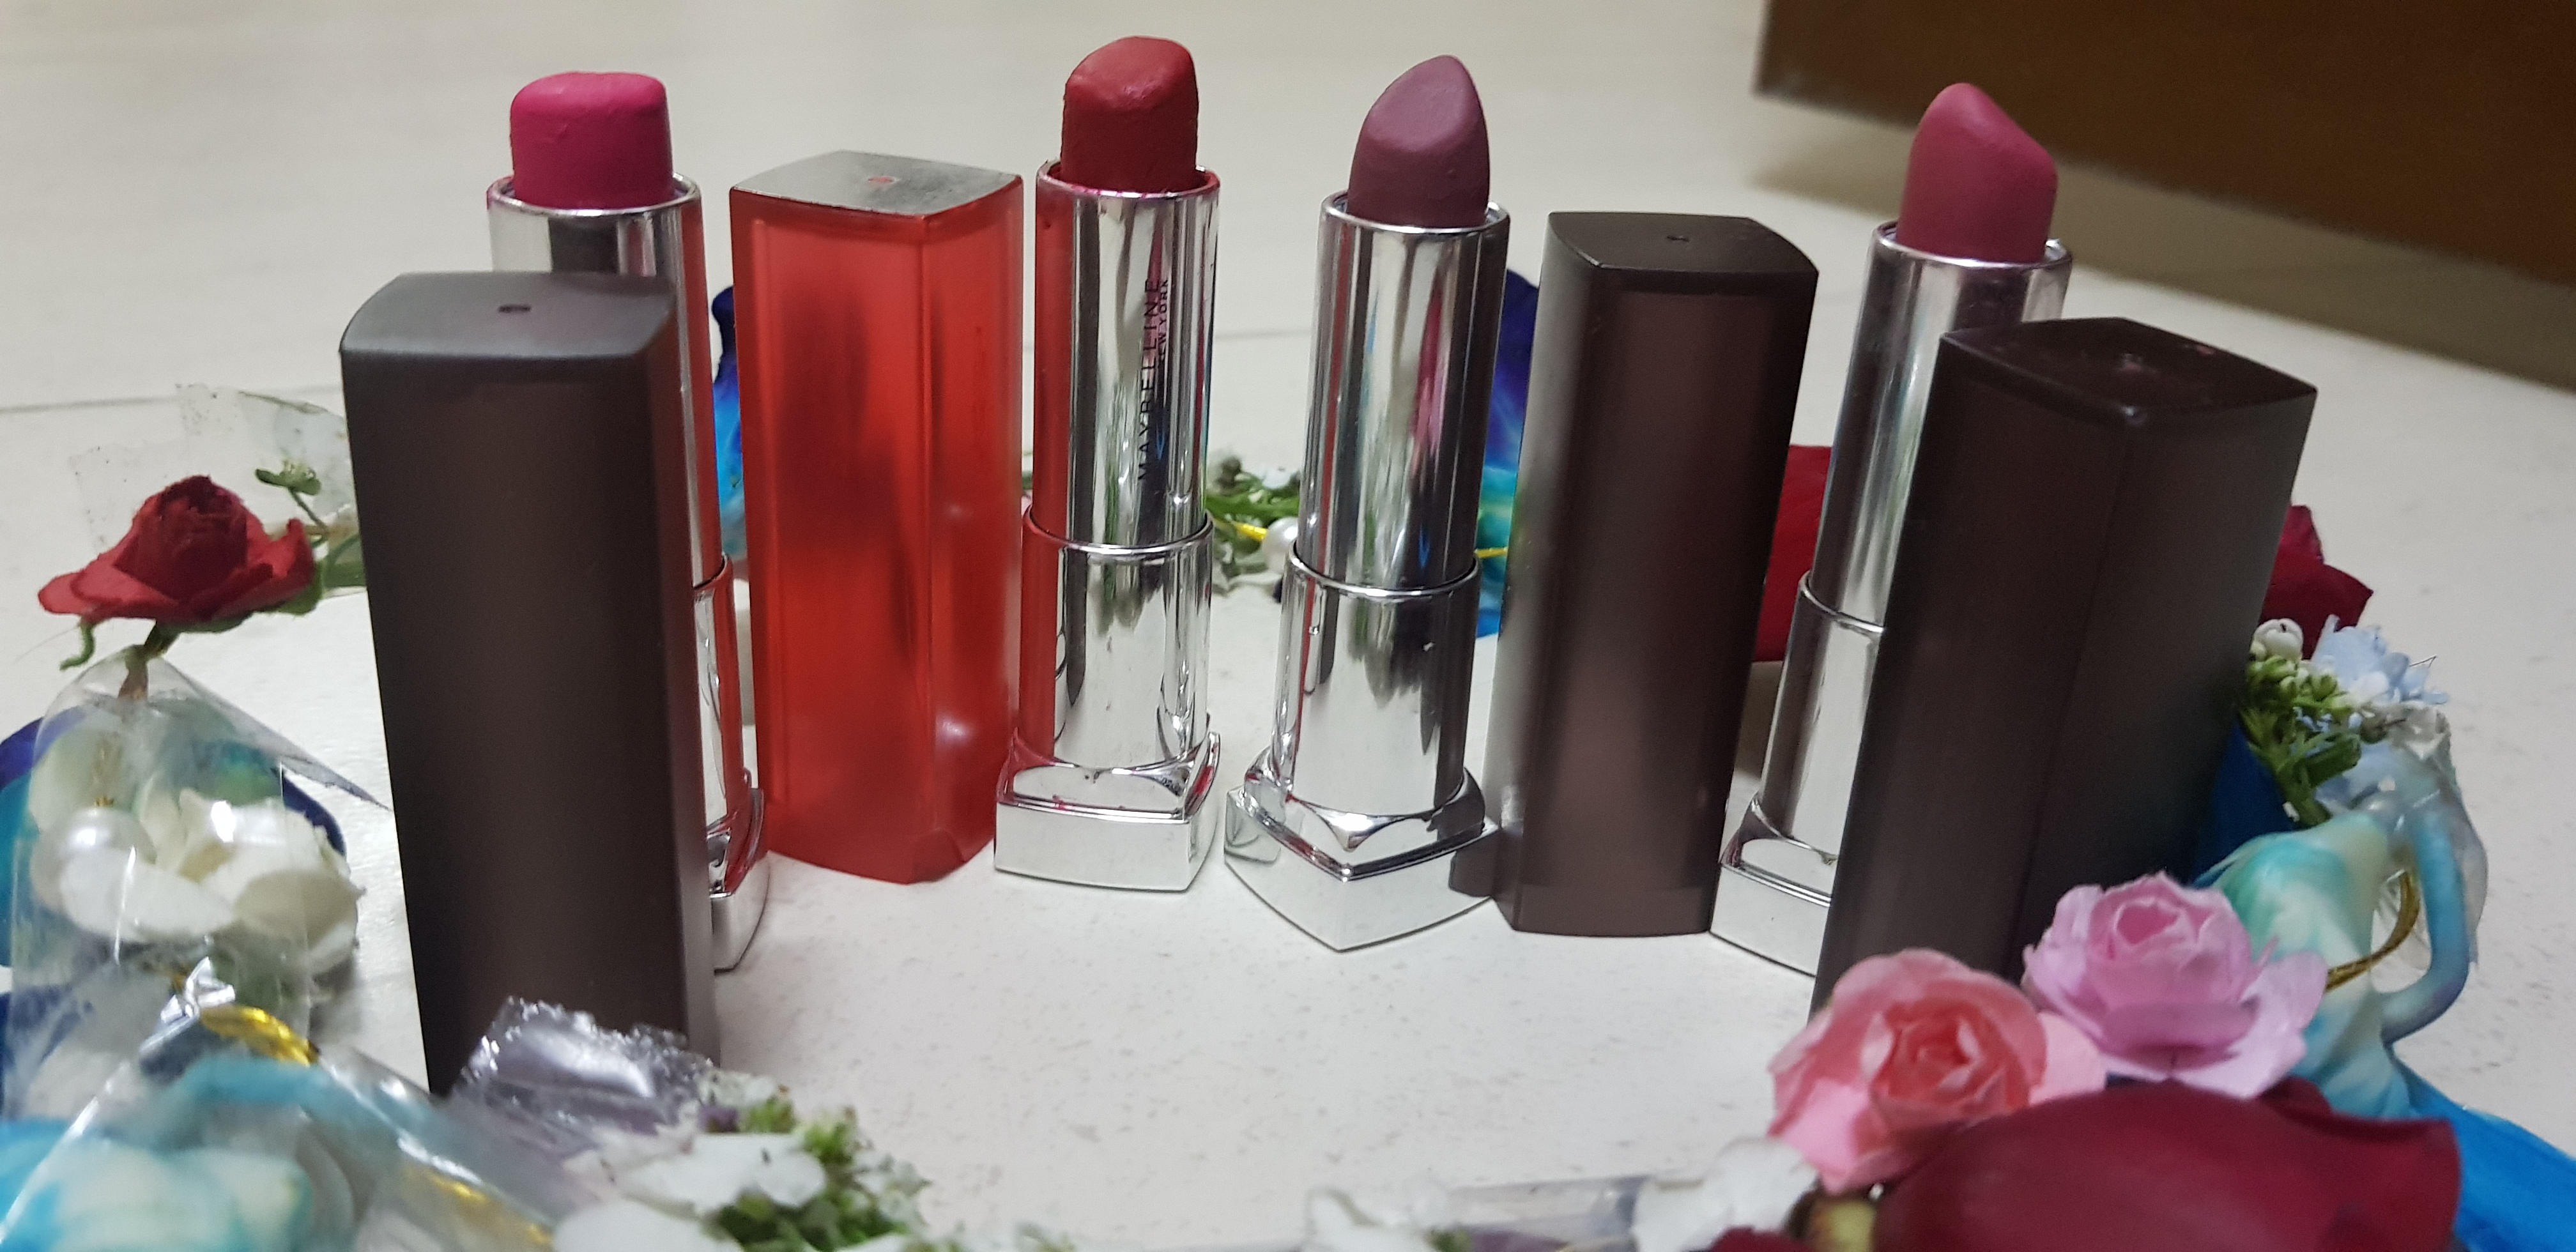 Maybelline New York Color Sensational Powder Matte Lipstick-Matte lipstick!-By poonam_kakkar-1